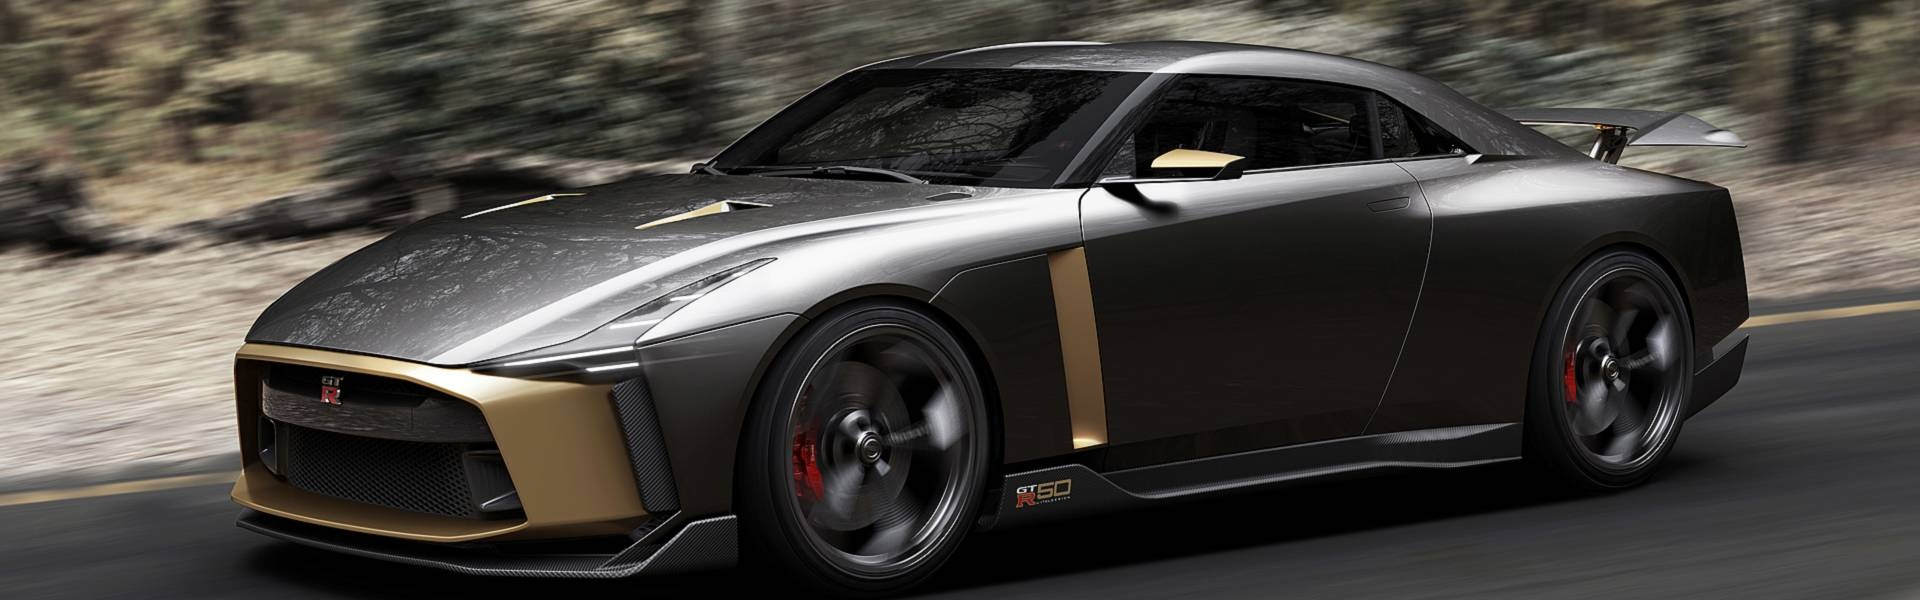 nissan-gtr-50-by-italdesign (4).jpg